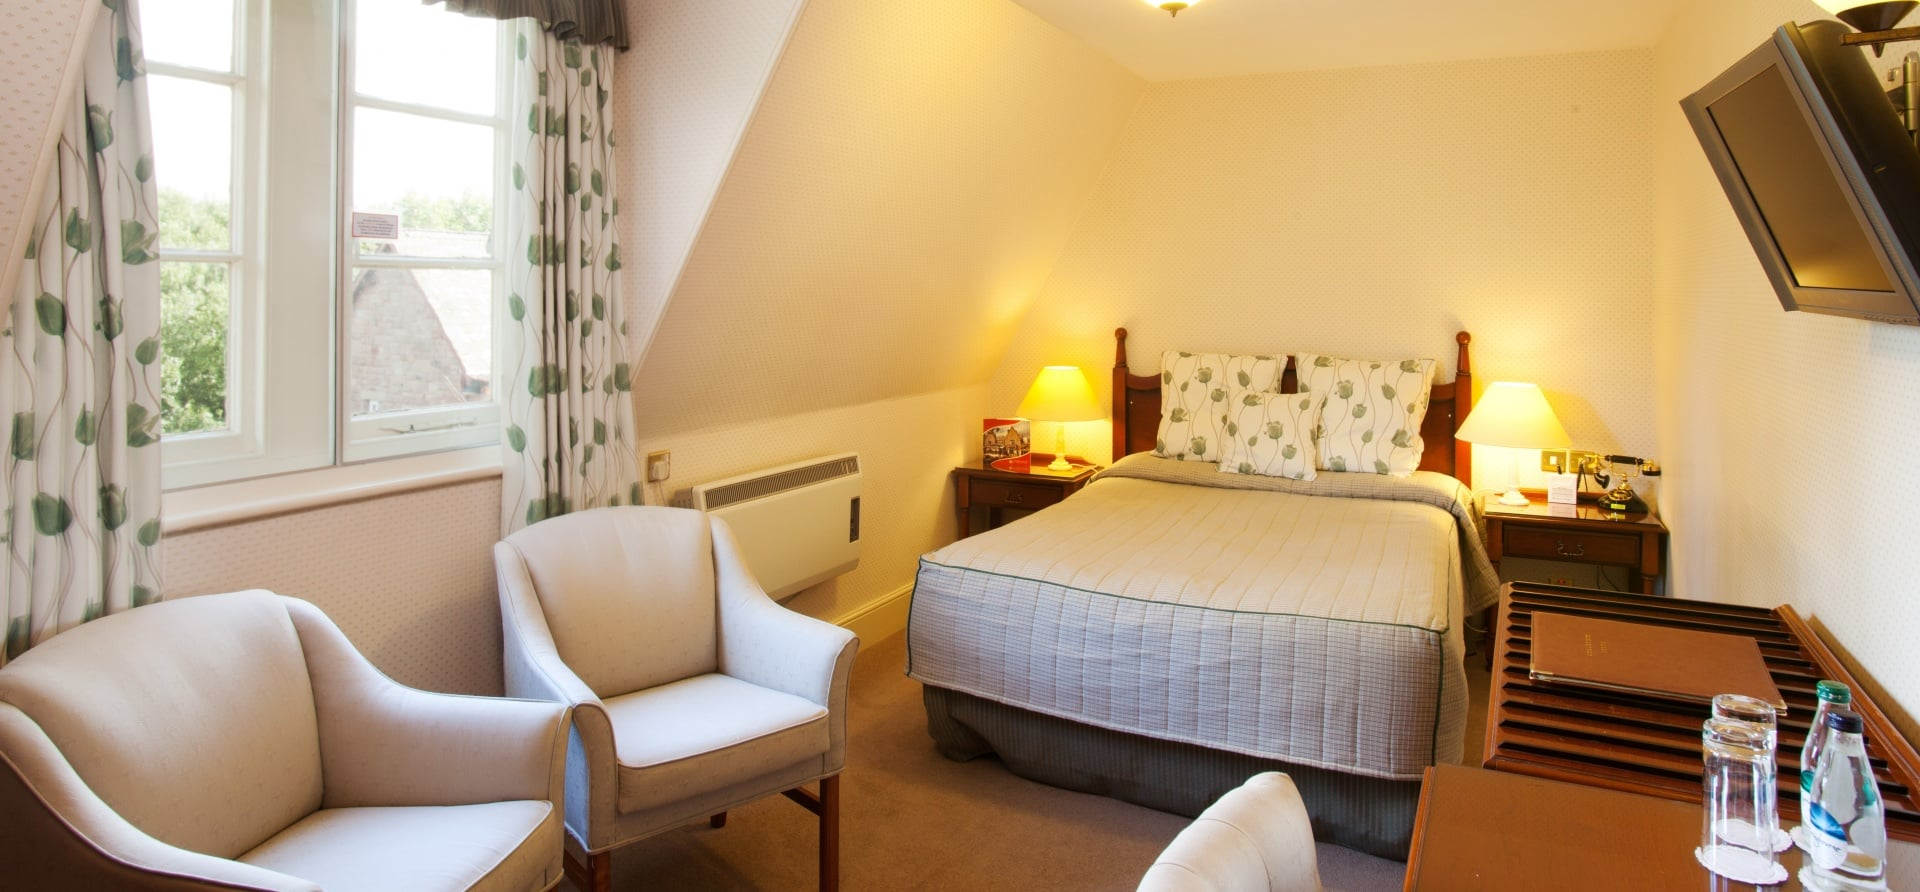 Spa Break and Treament For Two - Cumbria-13